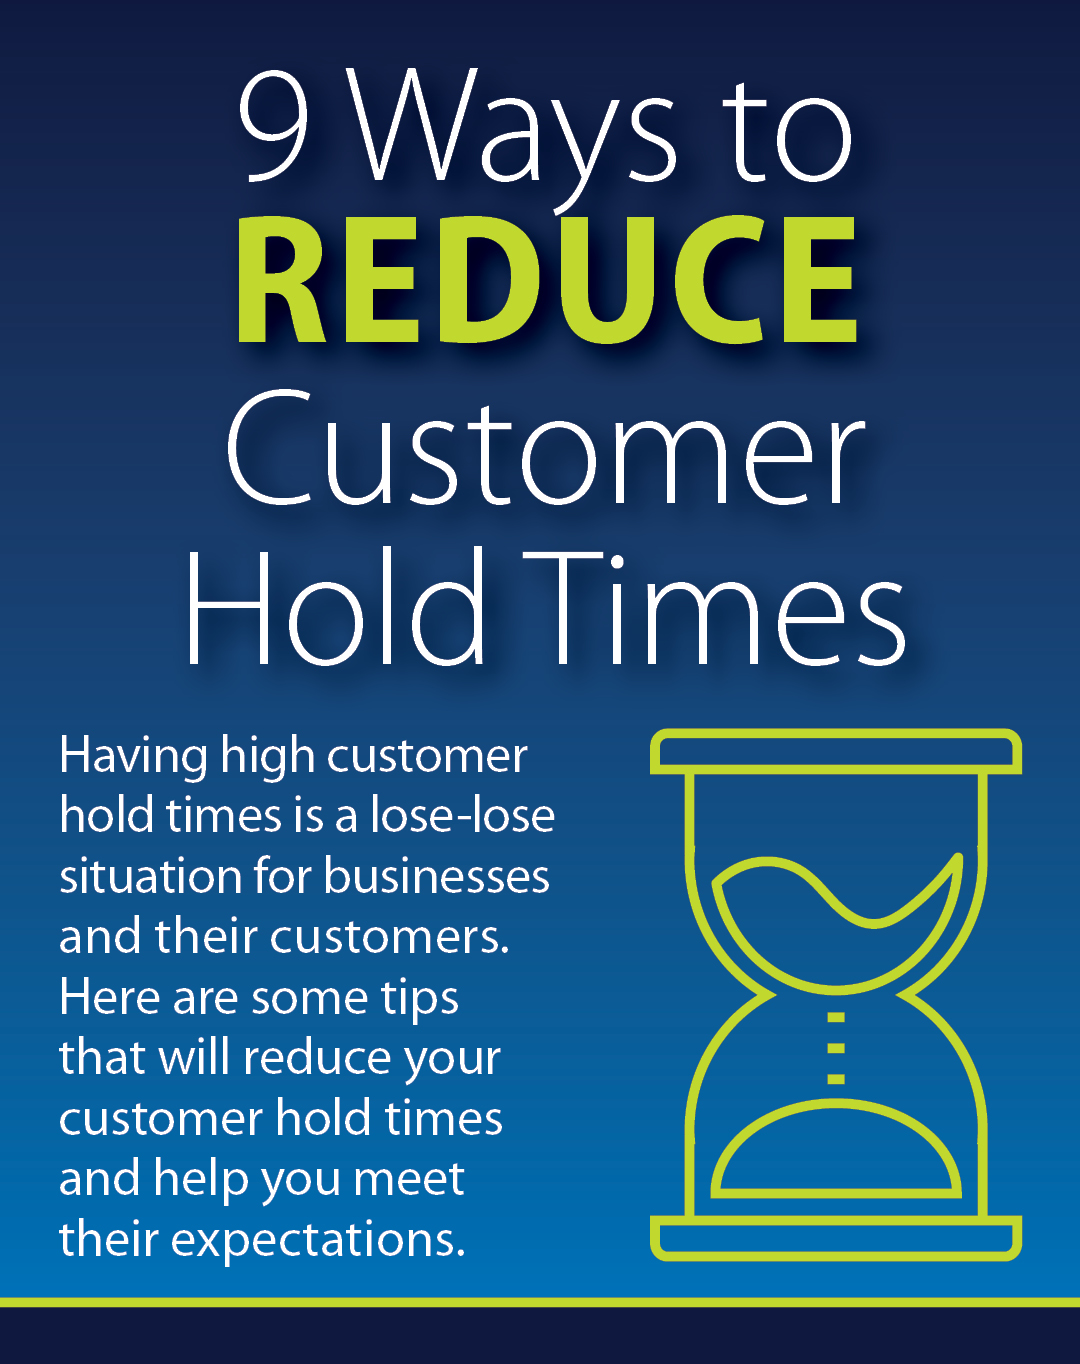 9 Ways to Reduce Customer Hold Times